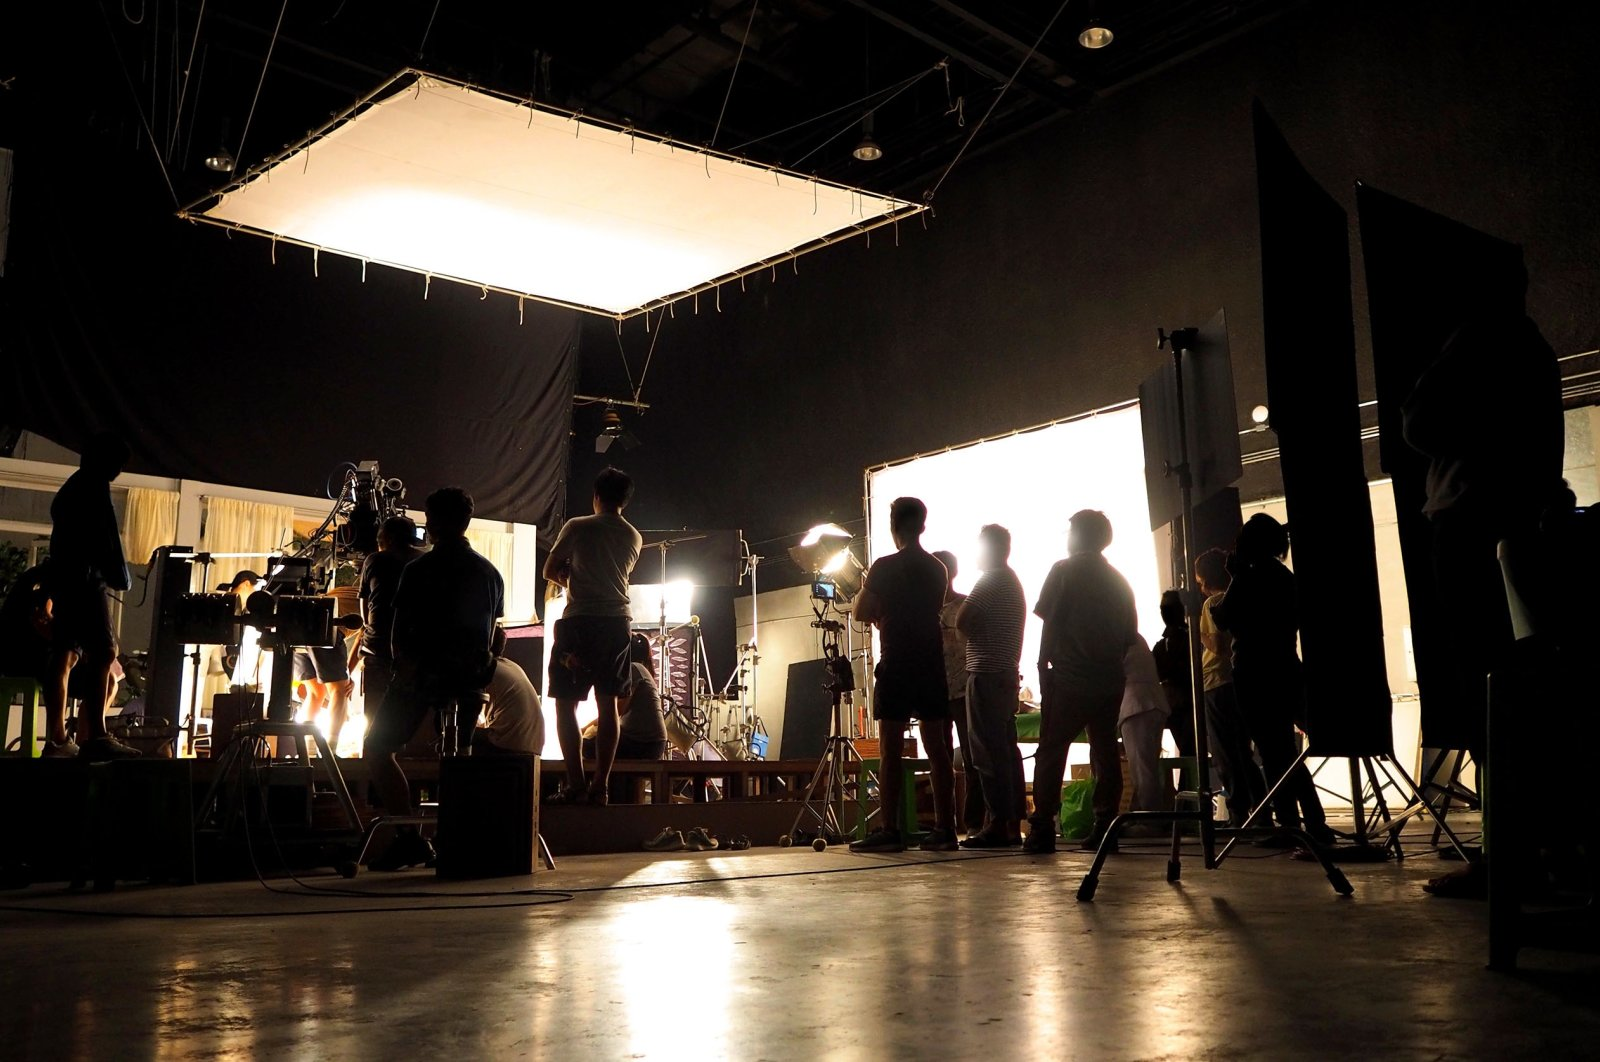 A film crew's silhouettes and equipment can be seen behind the scenes of a video production. (Shutterstock Photo)